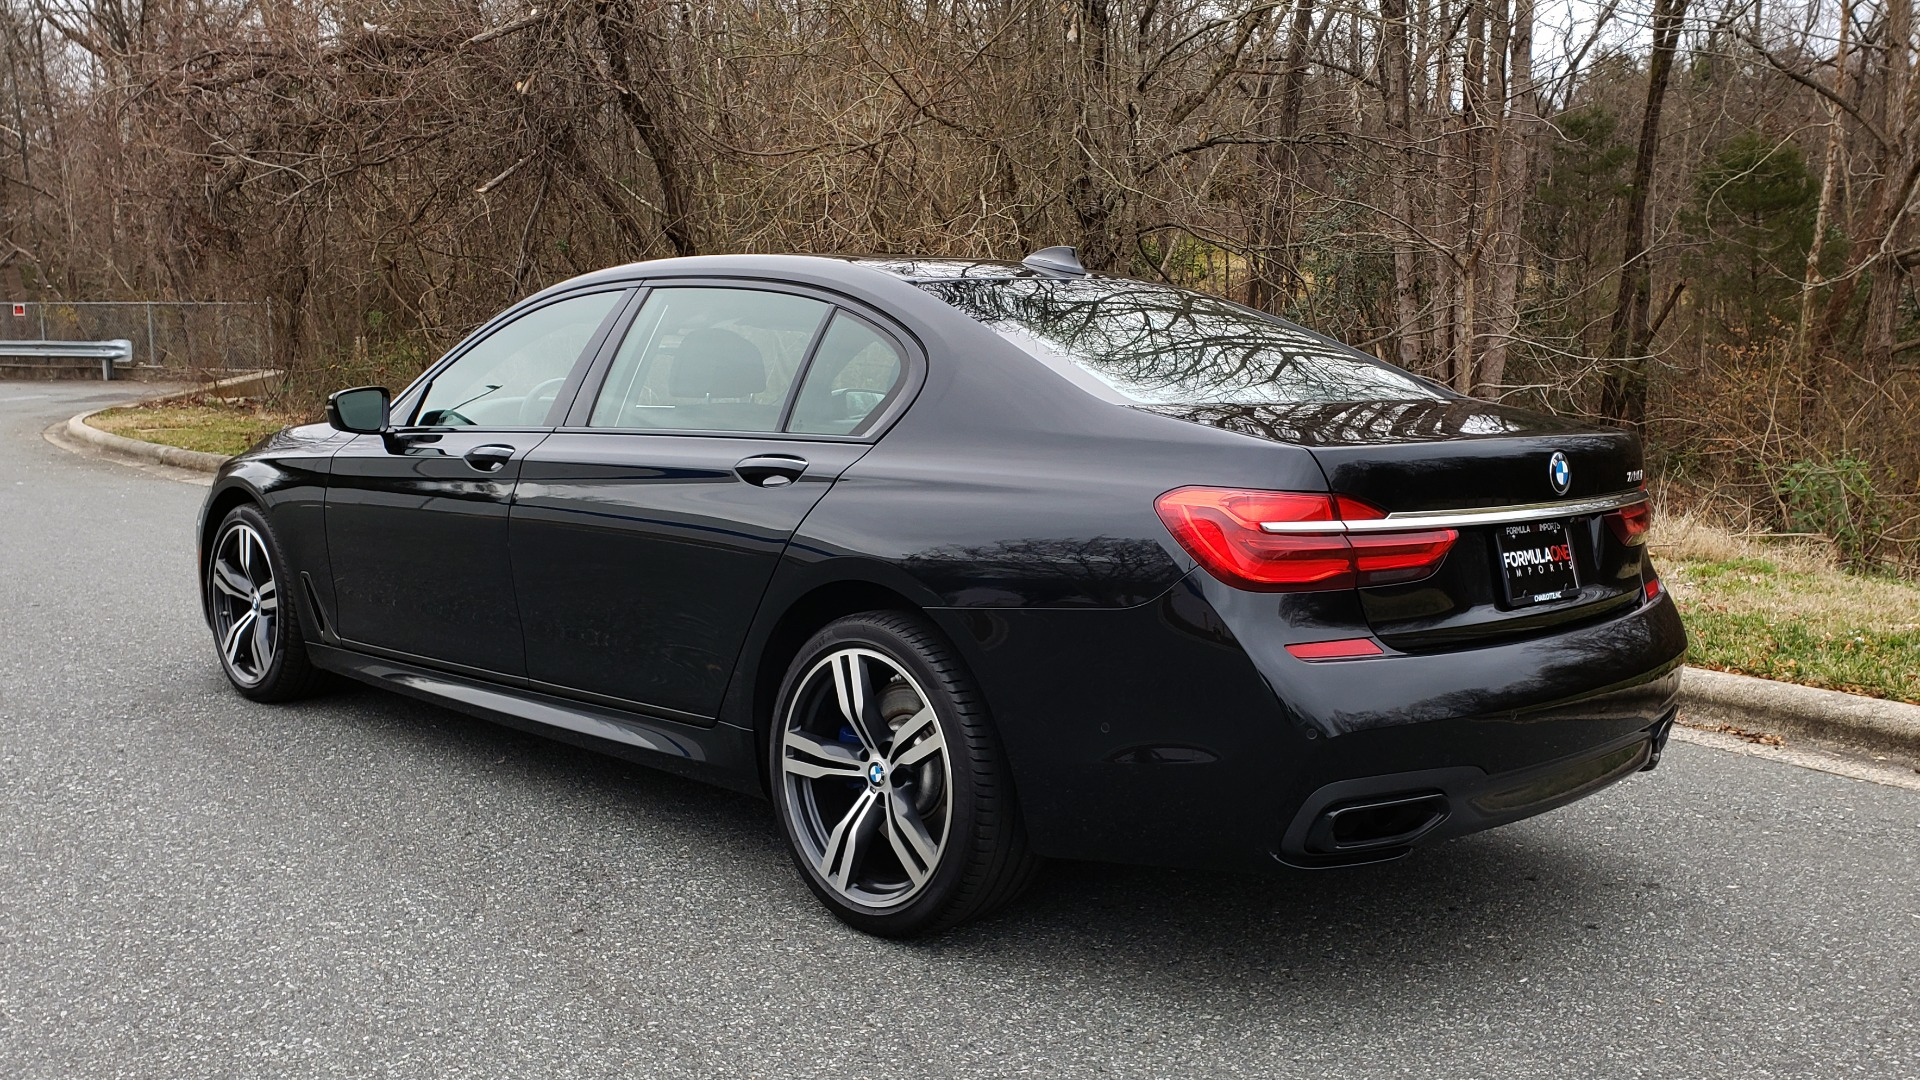 Used 2017 BMW 7 SERIES 750i M-SPORT / AUTOBAHN / EXEC / DRVR ASST PLUS II / CLD WTHR for sale Sold at Formula Imports in Charlotte NC 28227 3